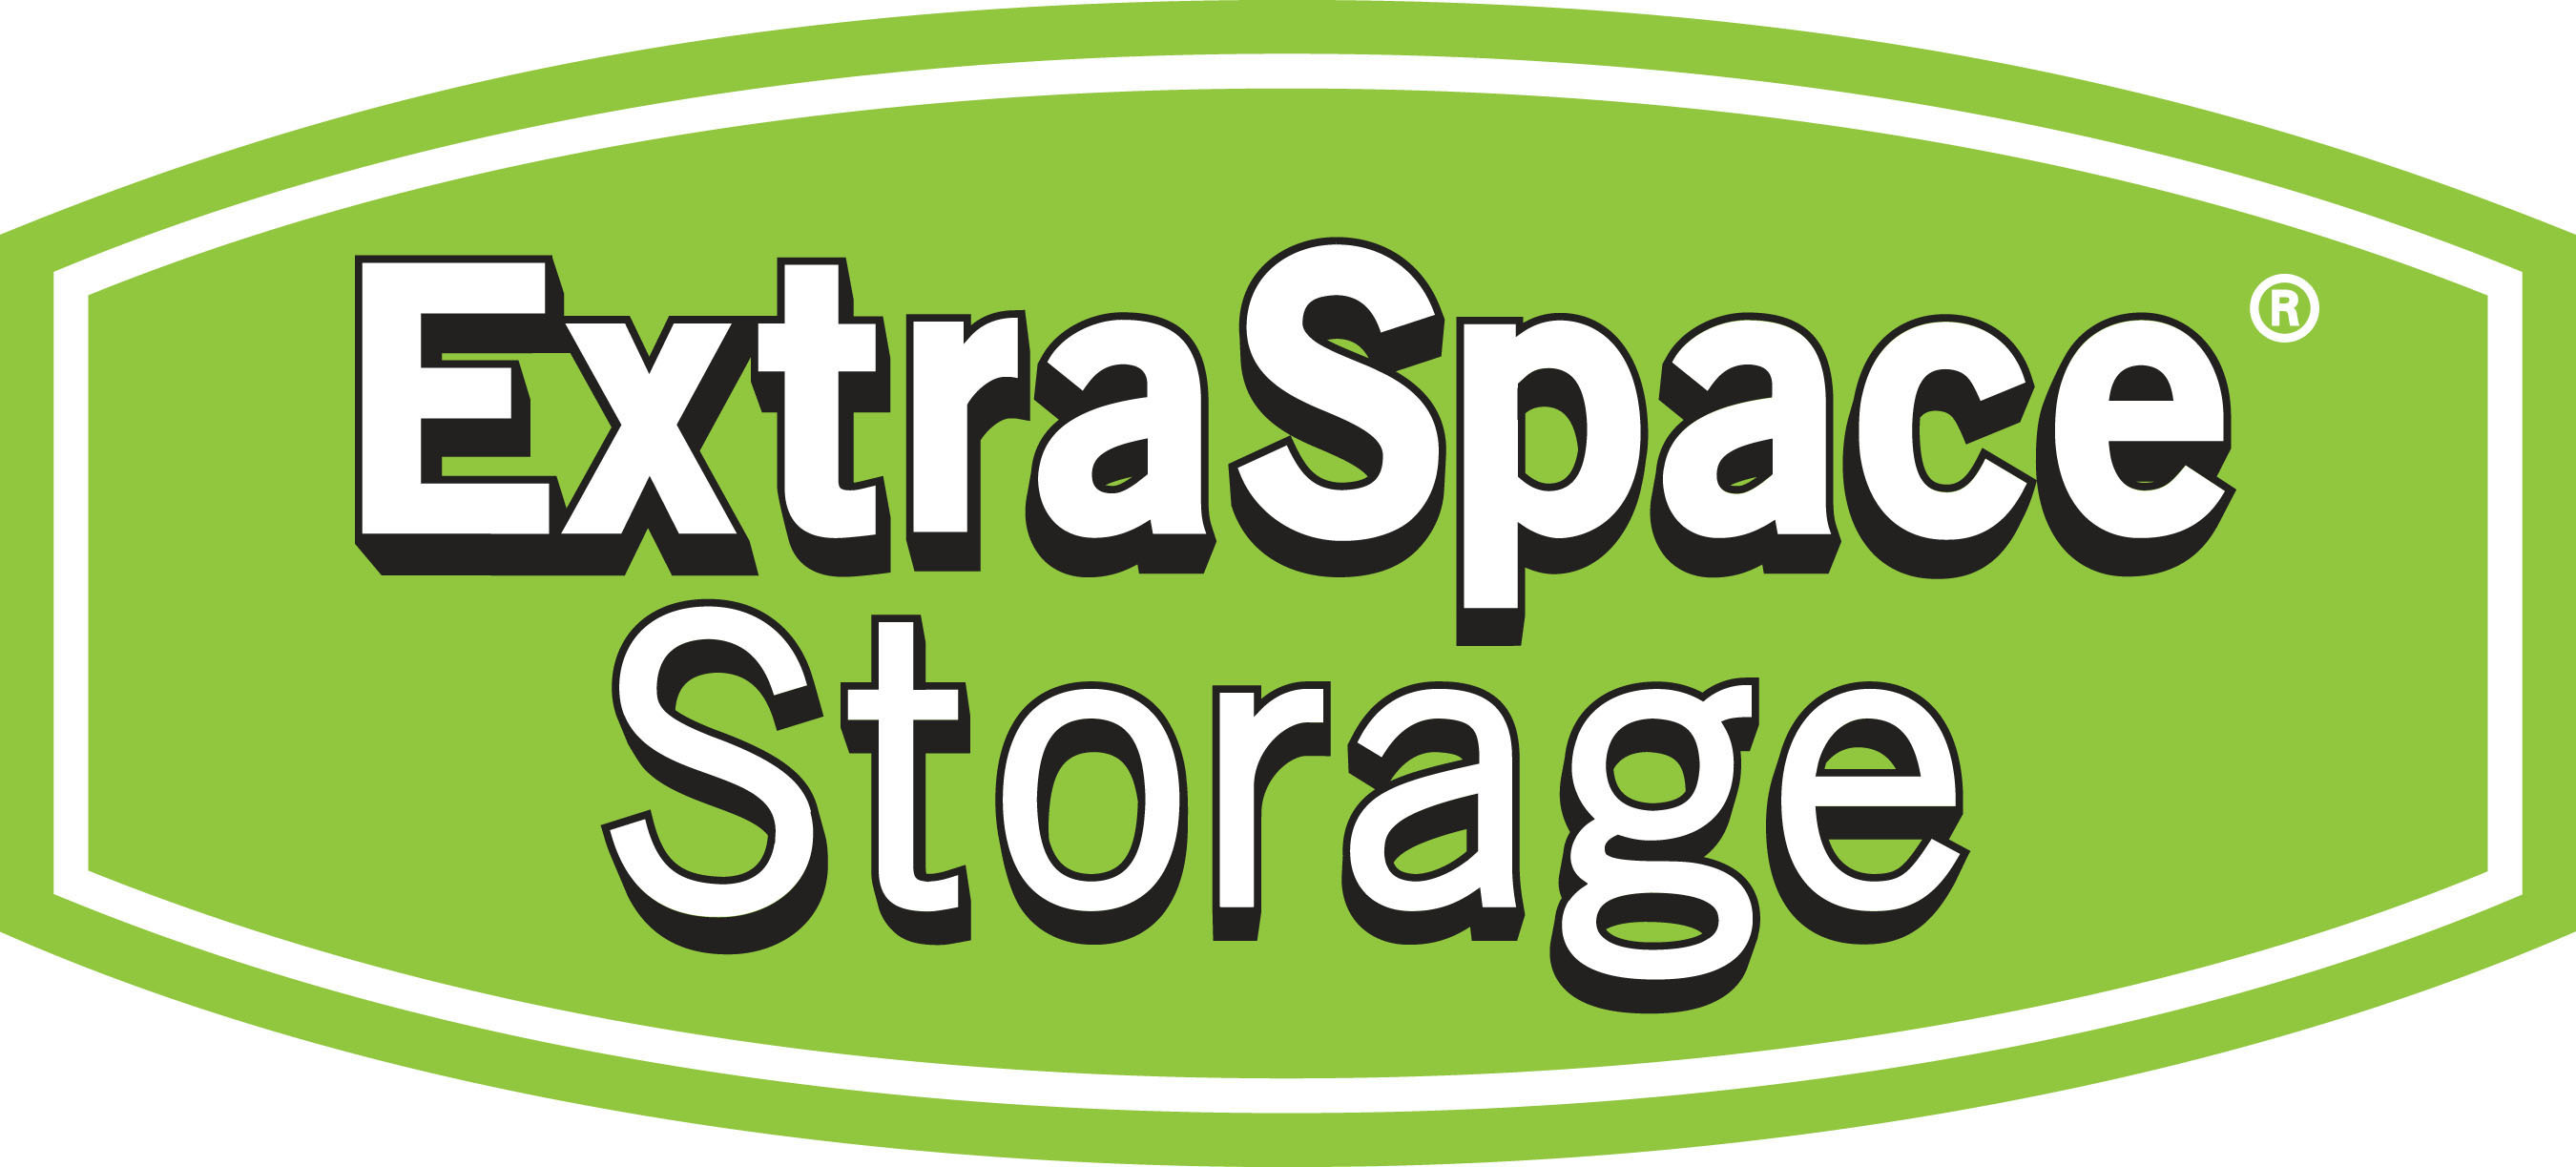 Extra Space Storage. You deserve some extra space!